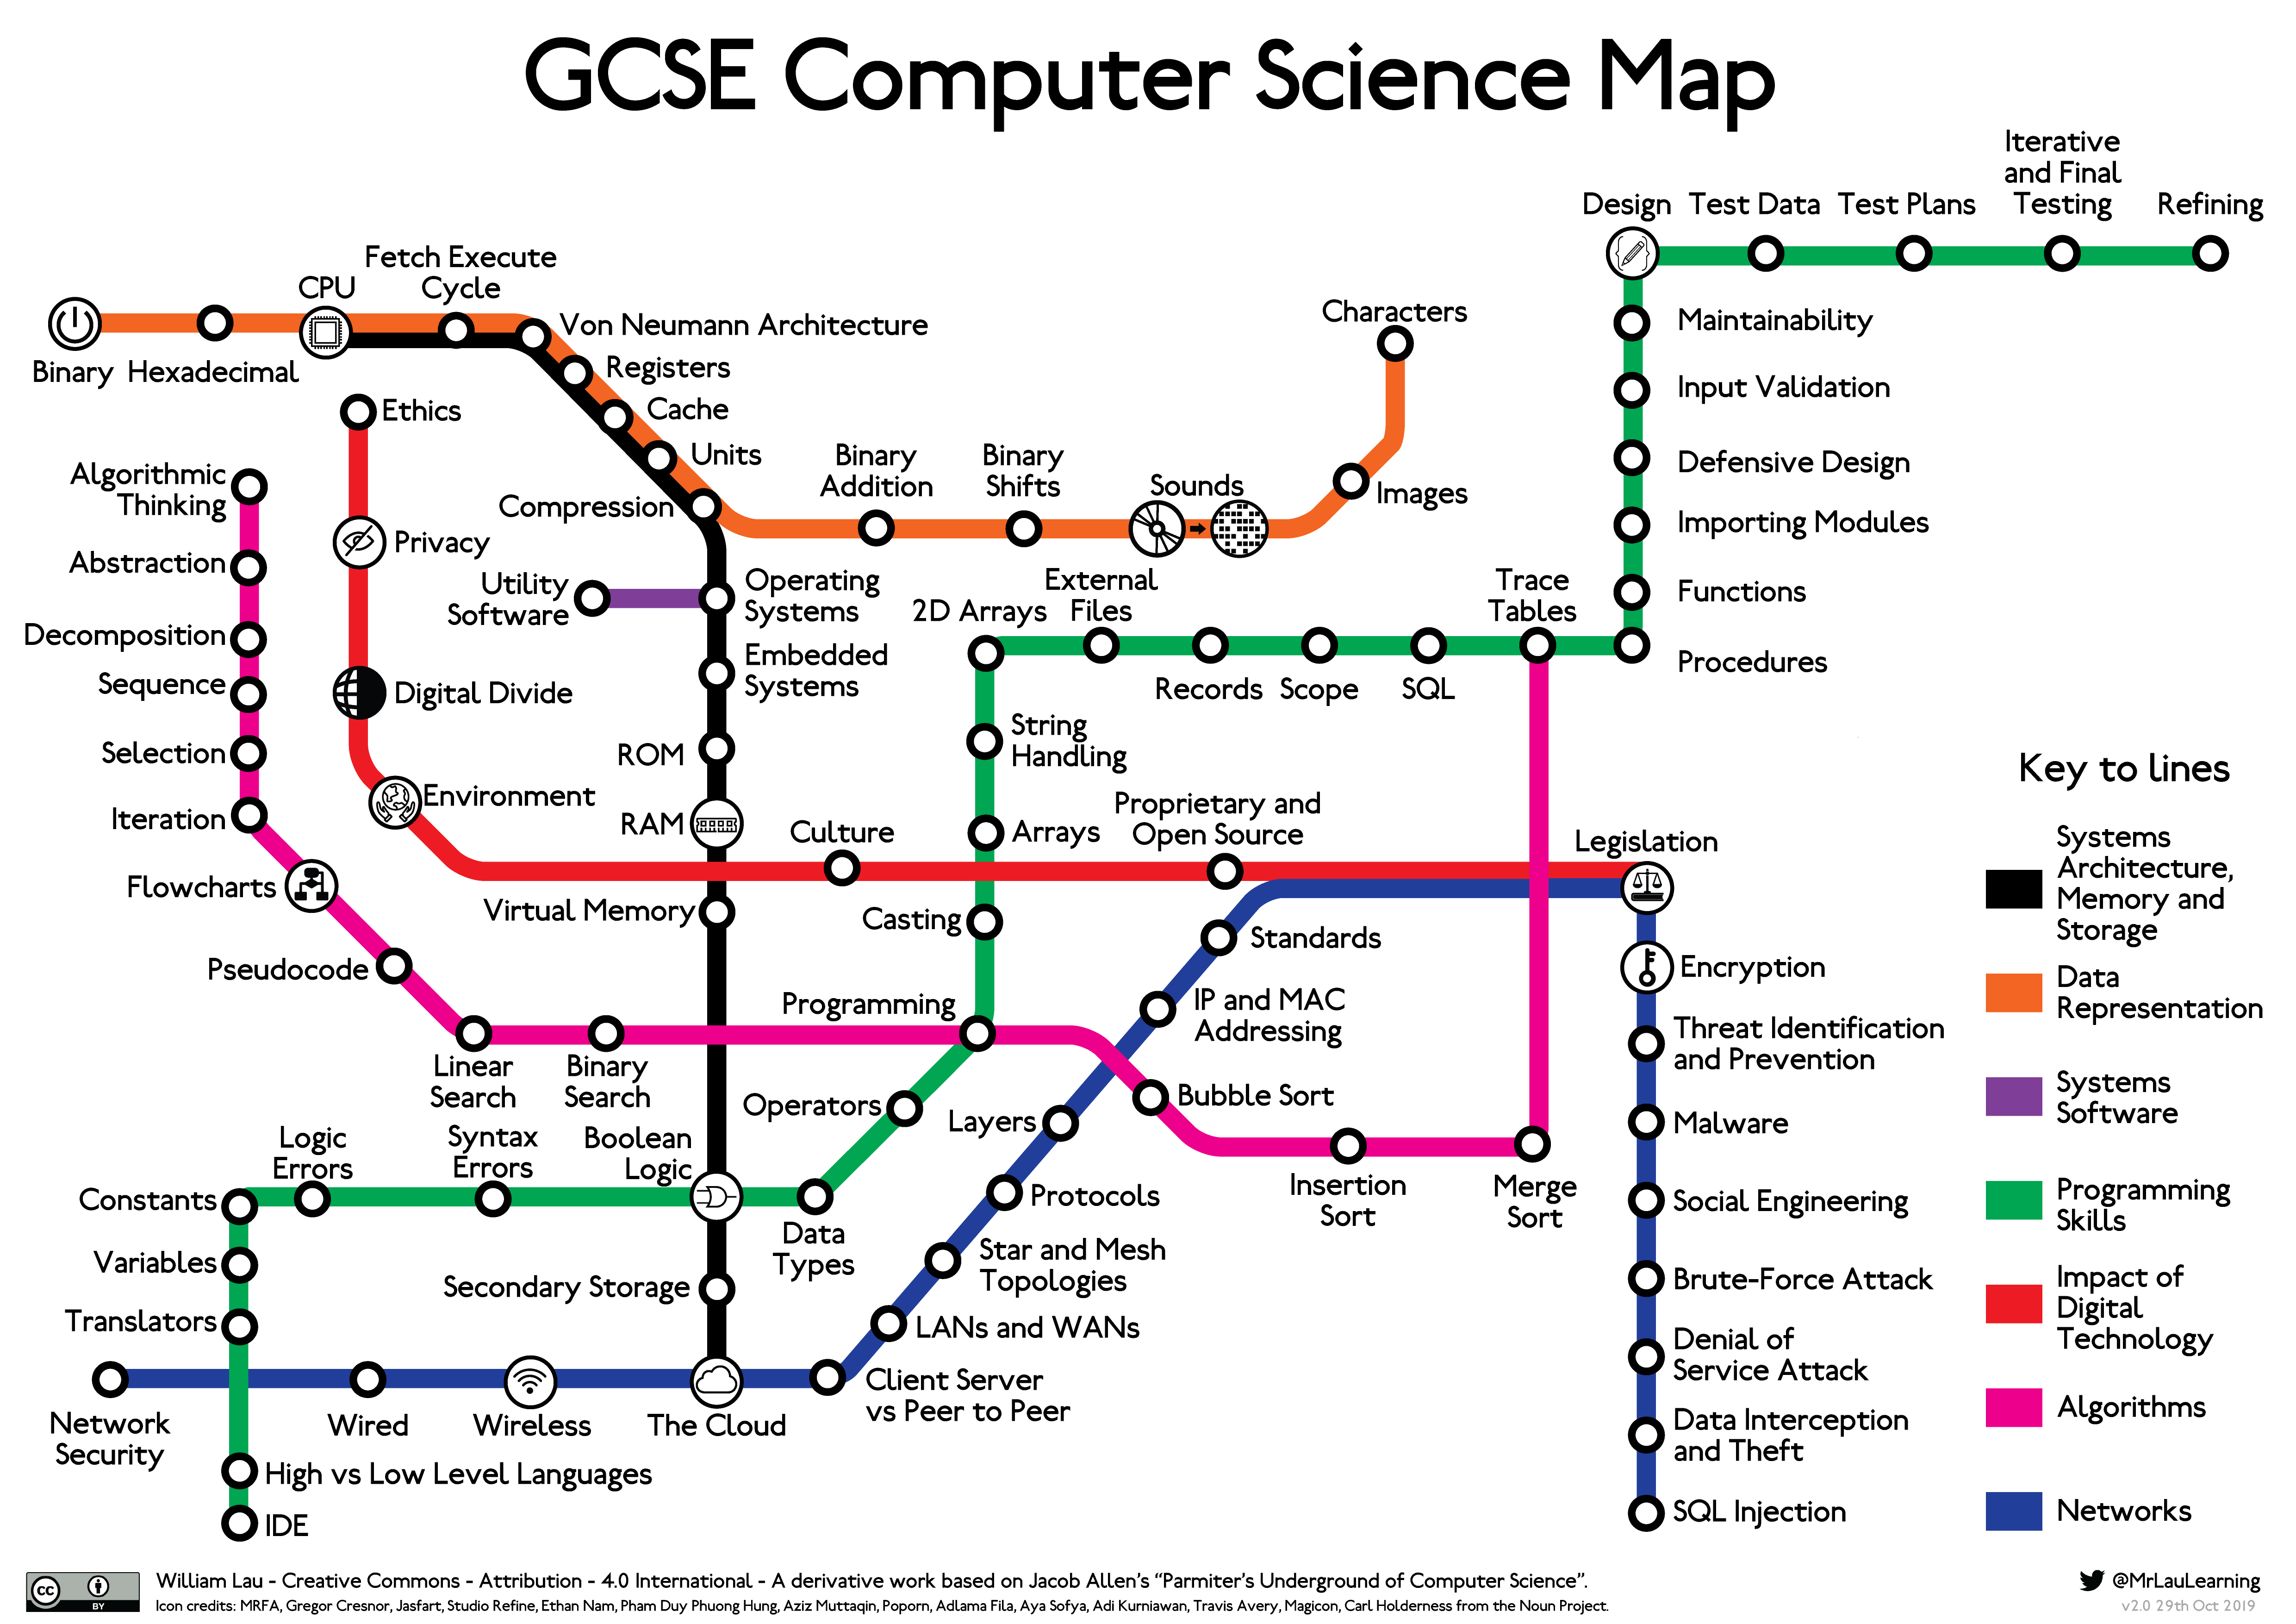 GCSE Computer Science Underground Map